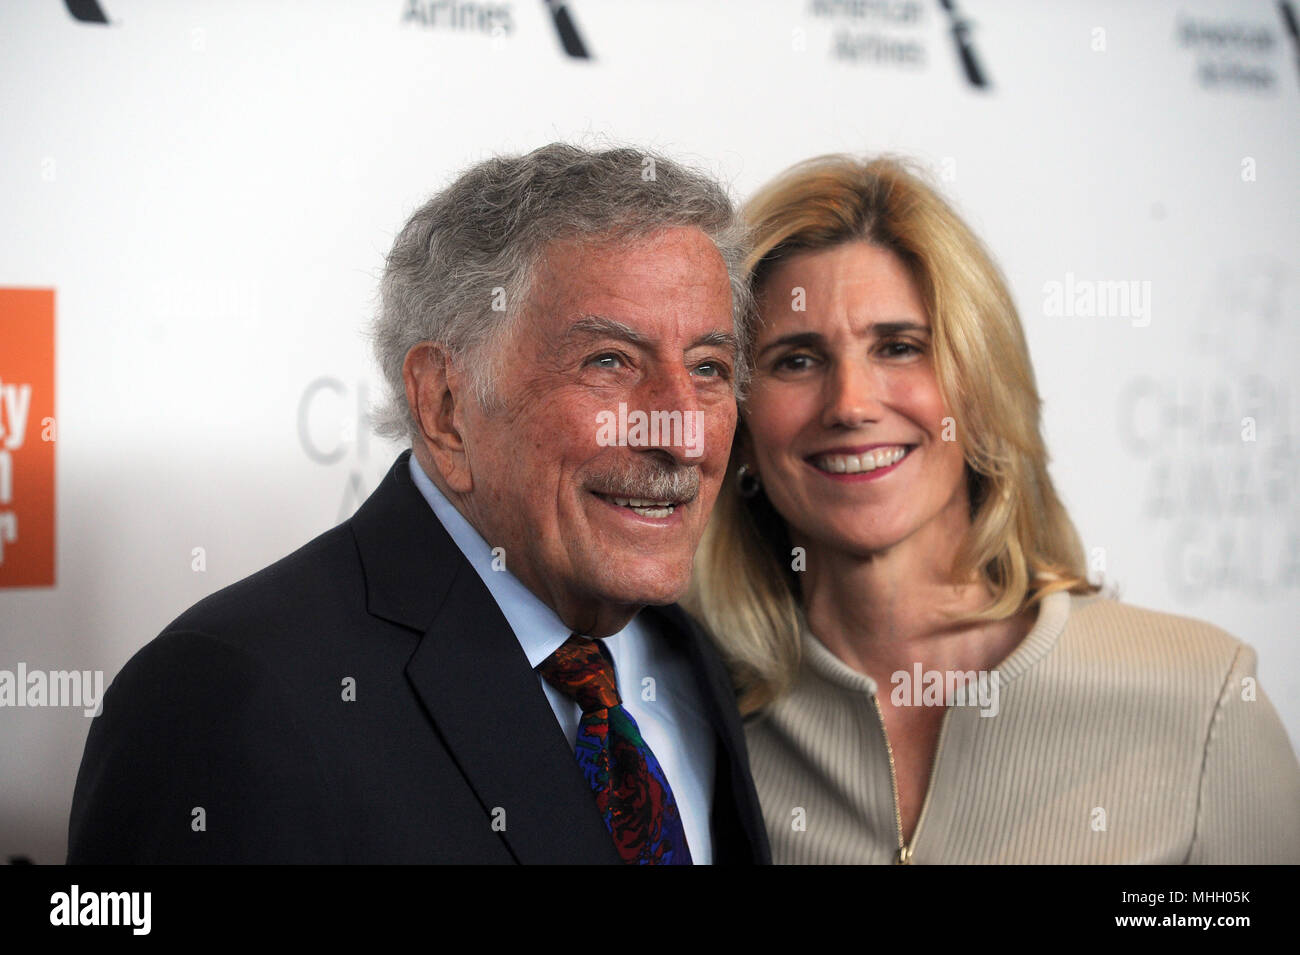 NEW YORK, NY - APRIL 30: Tony Bennett, Susan Crow  attends the 45th Chaplin Award Gala honoring Helen Mirren at Alice Tully Hall on April 30, 2018 in New York City.   People:  Tony Bennett, Susan Crow - Stock Image